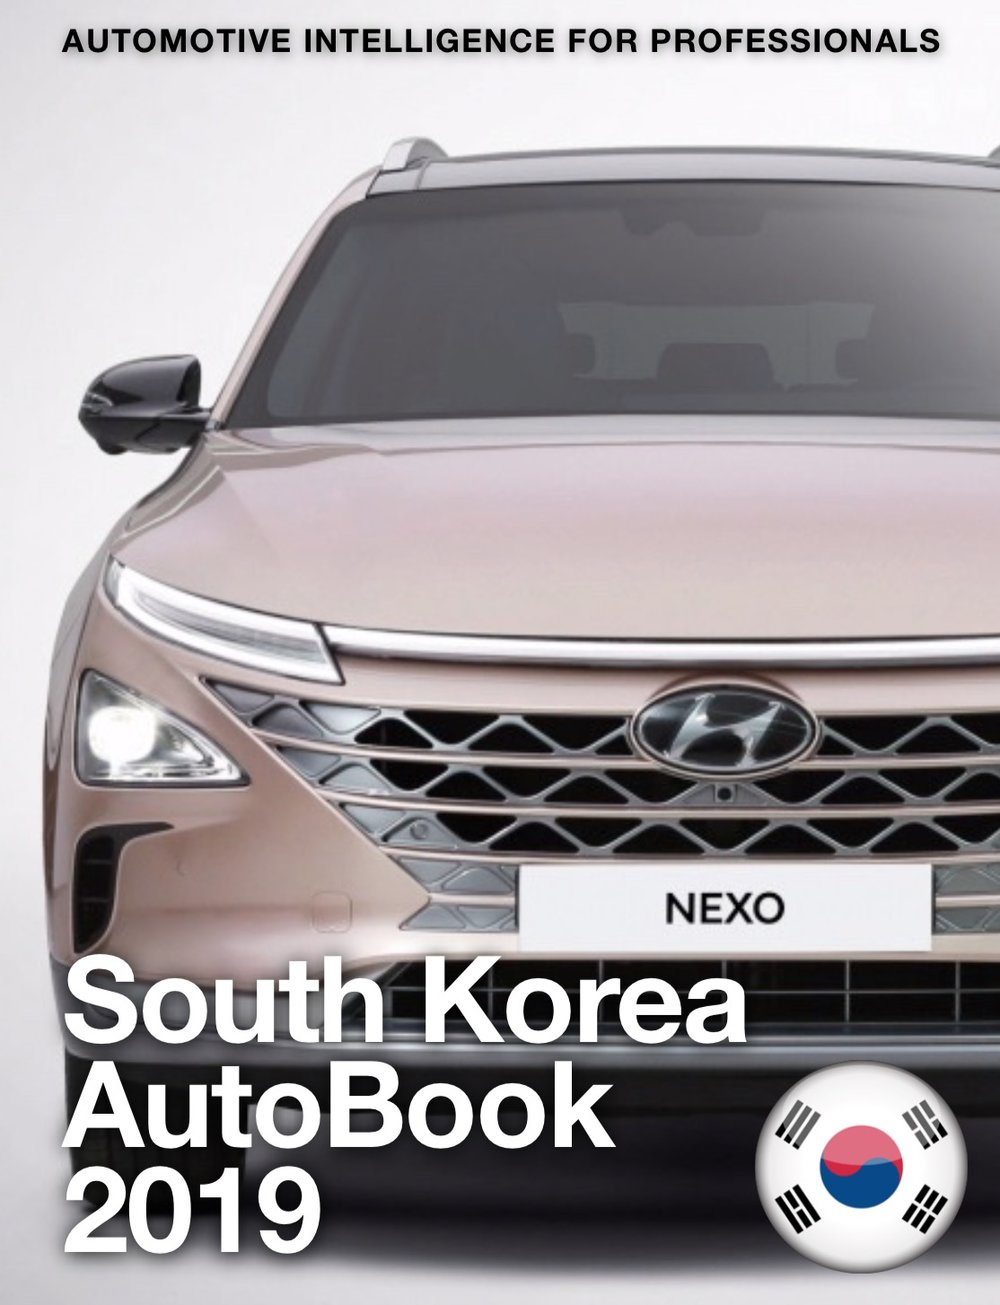 South Korea AutoBook 2019 Cover.jpg